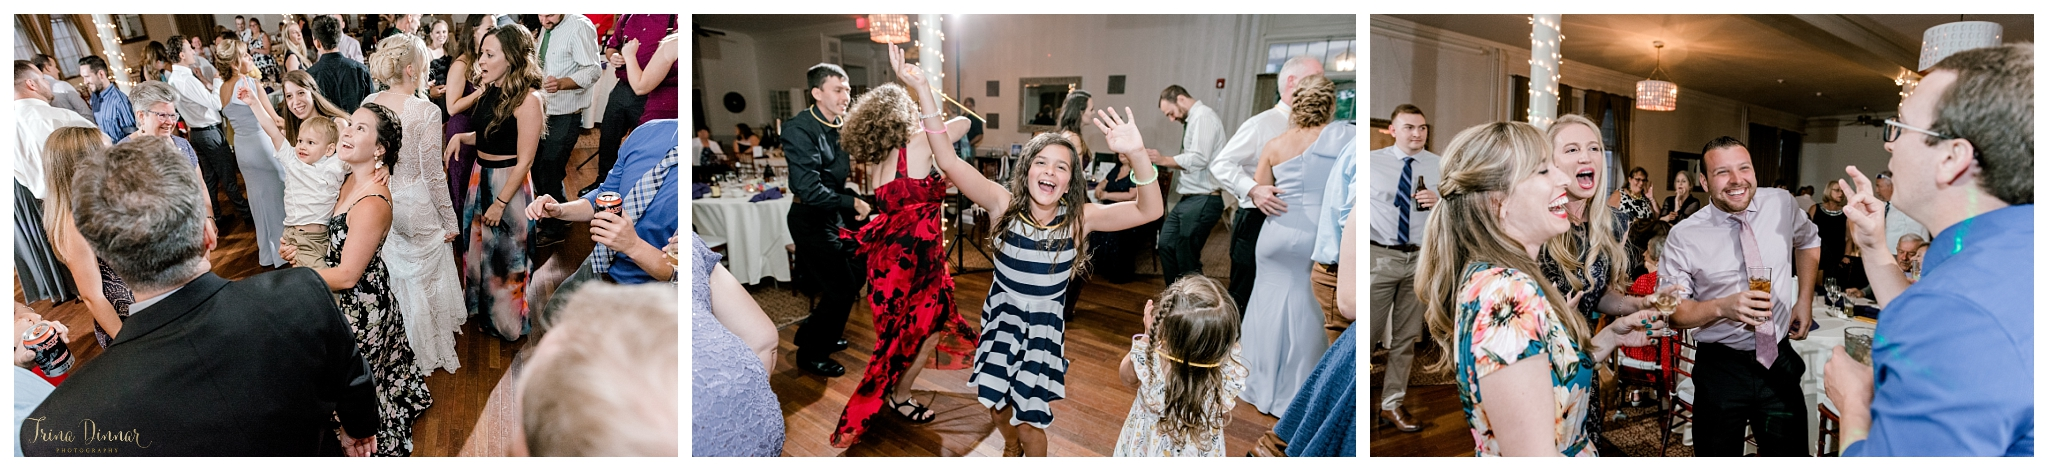 Guests Dancing at Portland Club Maine Wedding